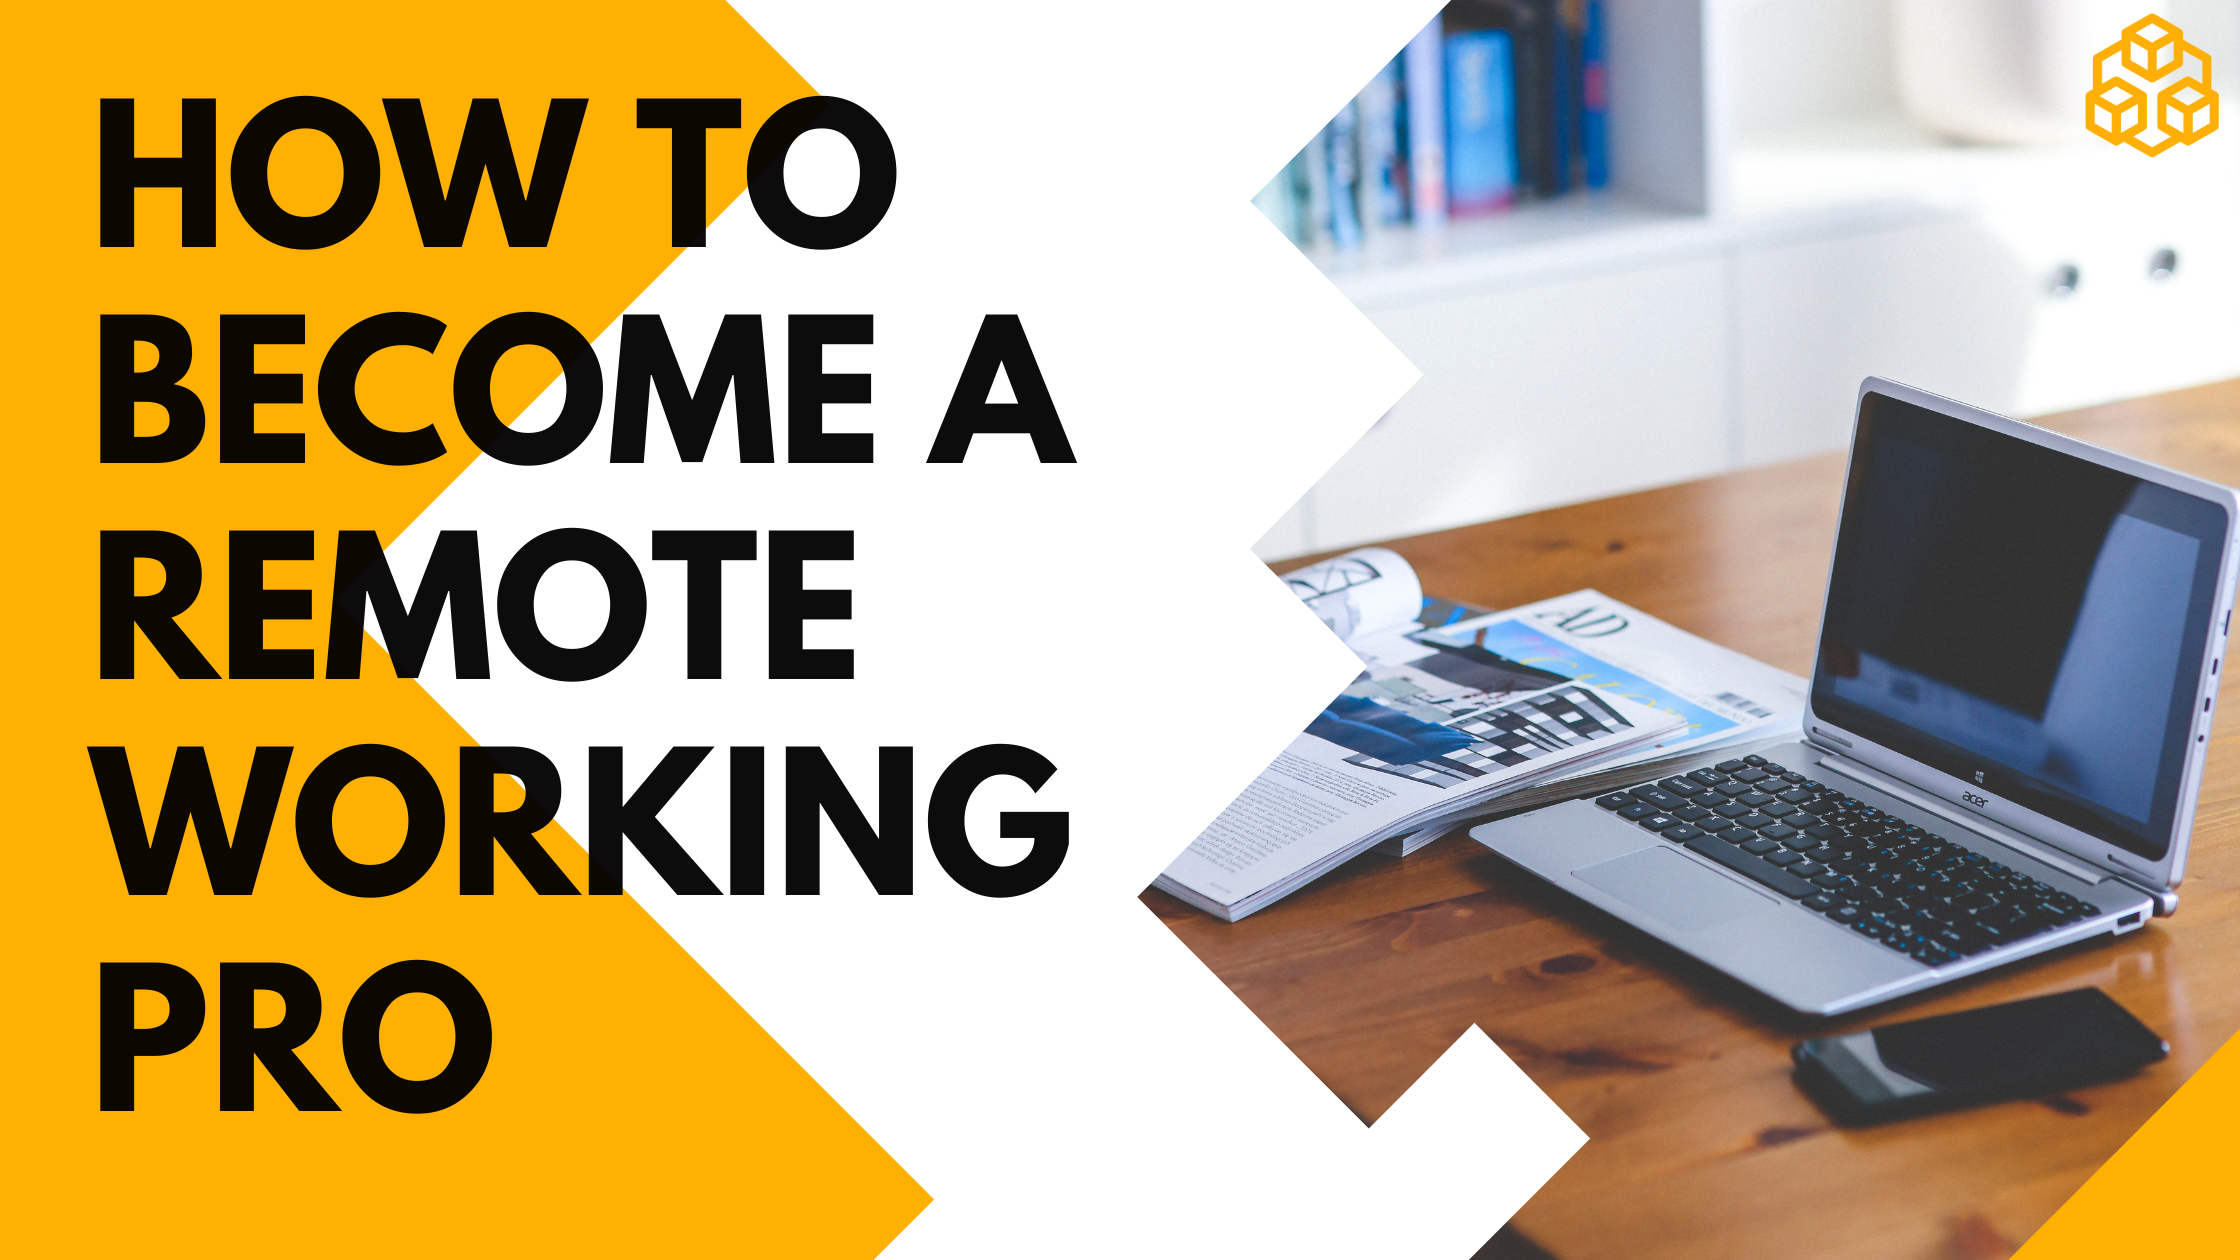 Top Tips on How to Become a Remote Working Pro